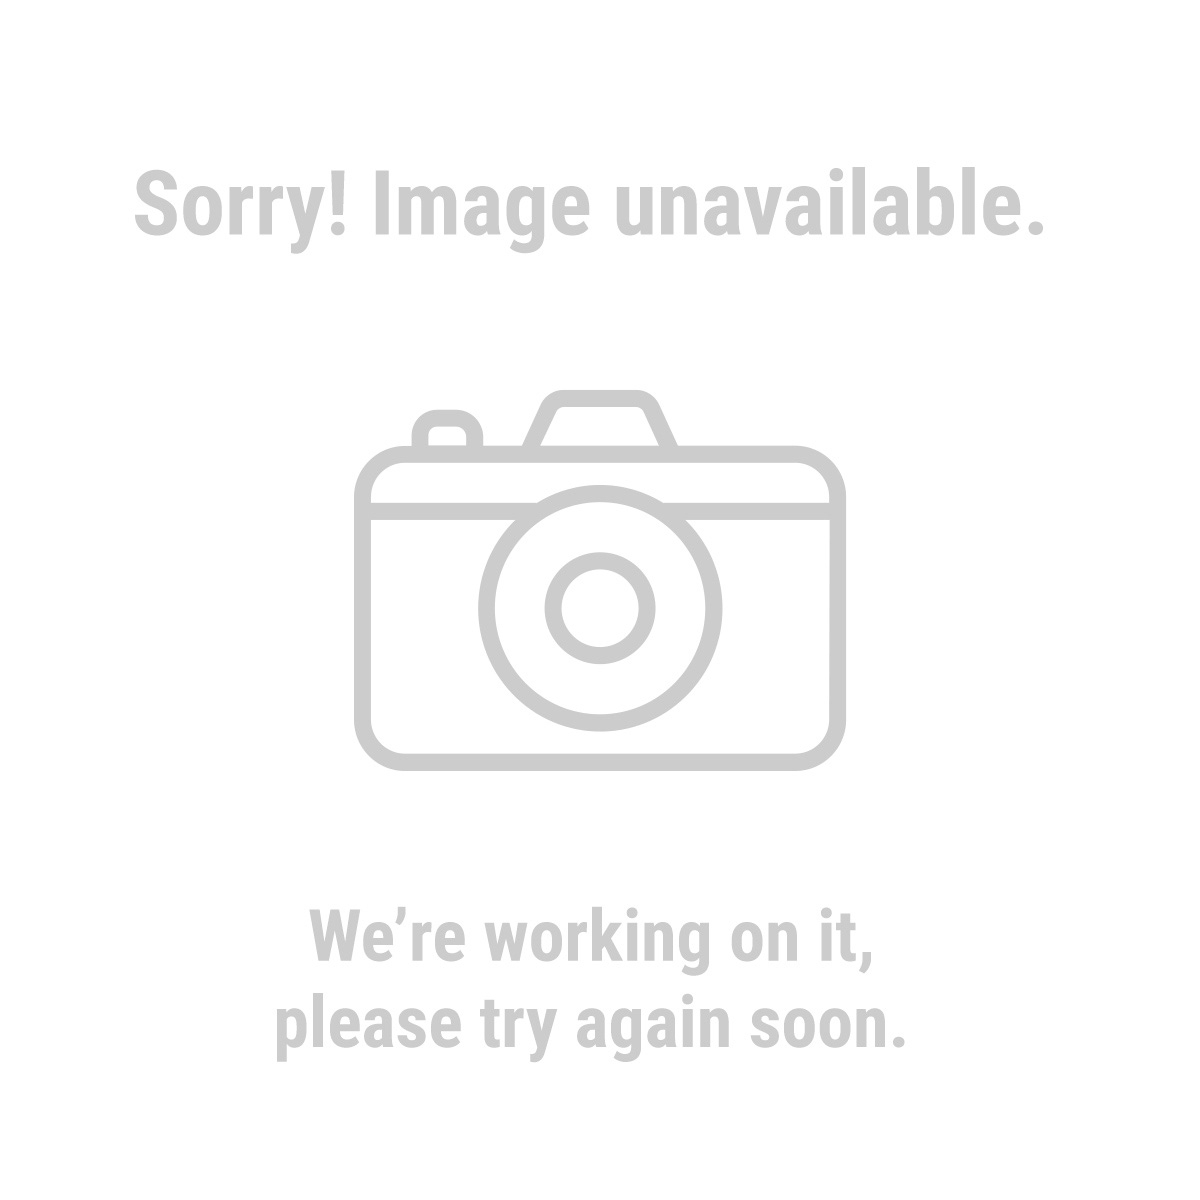 Portable Wet Cut Tile Saw